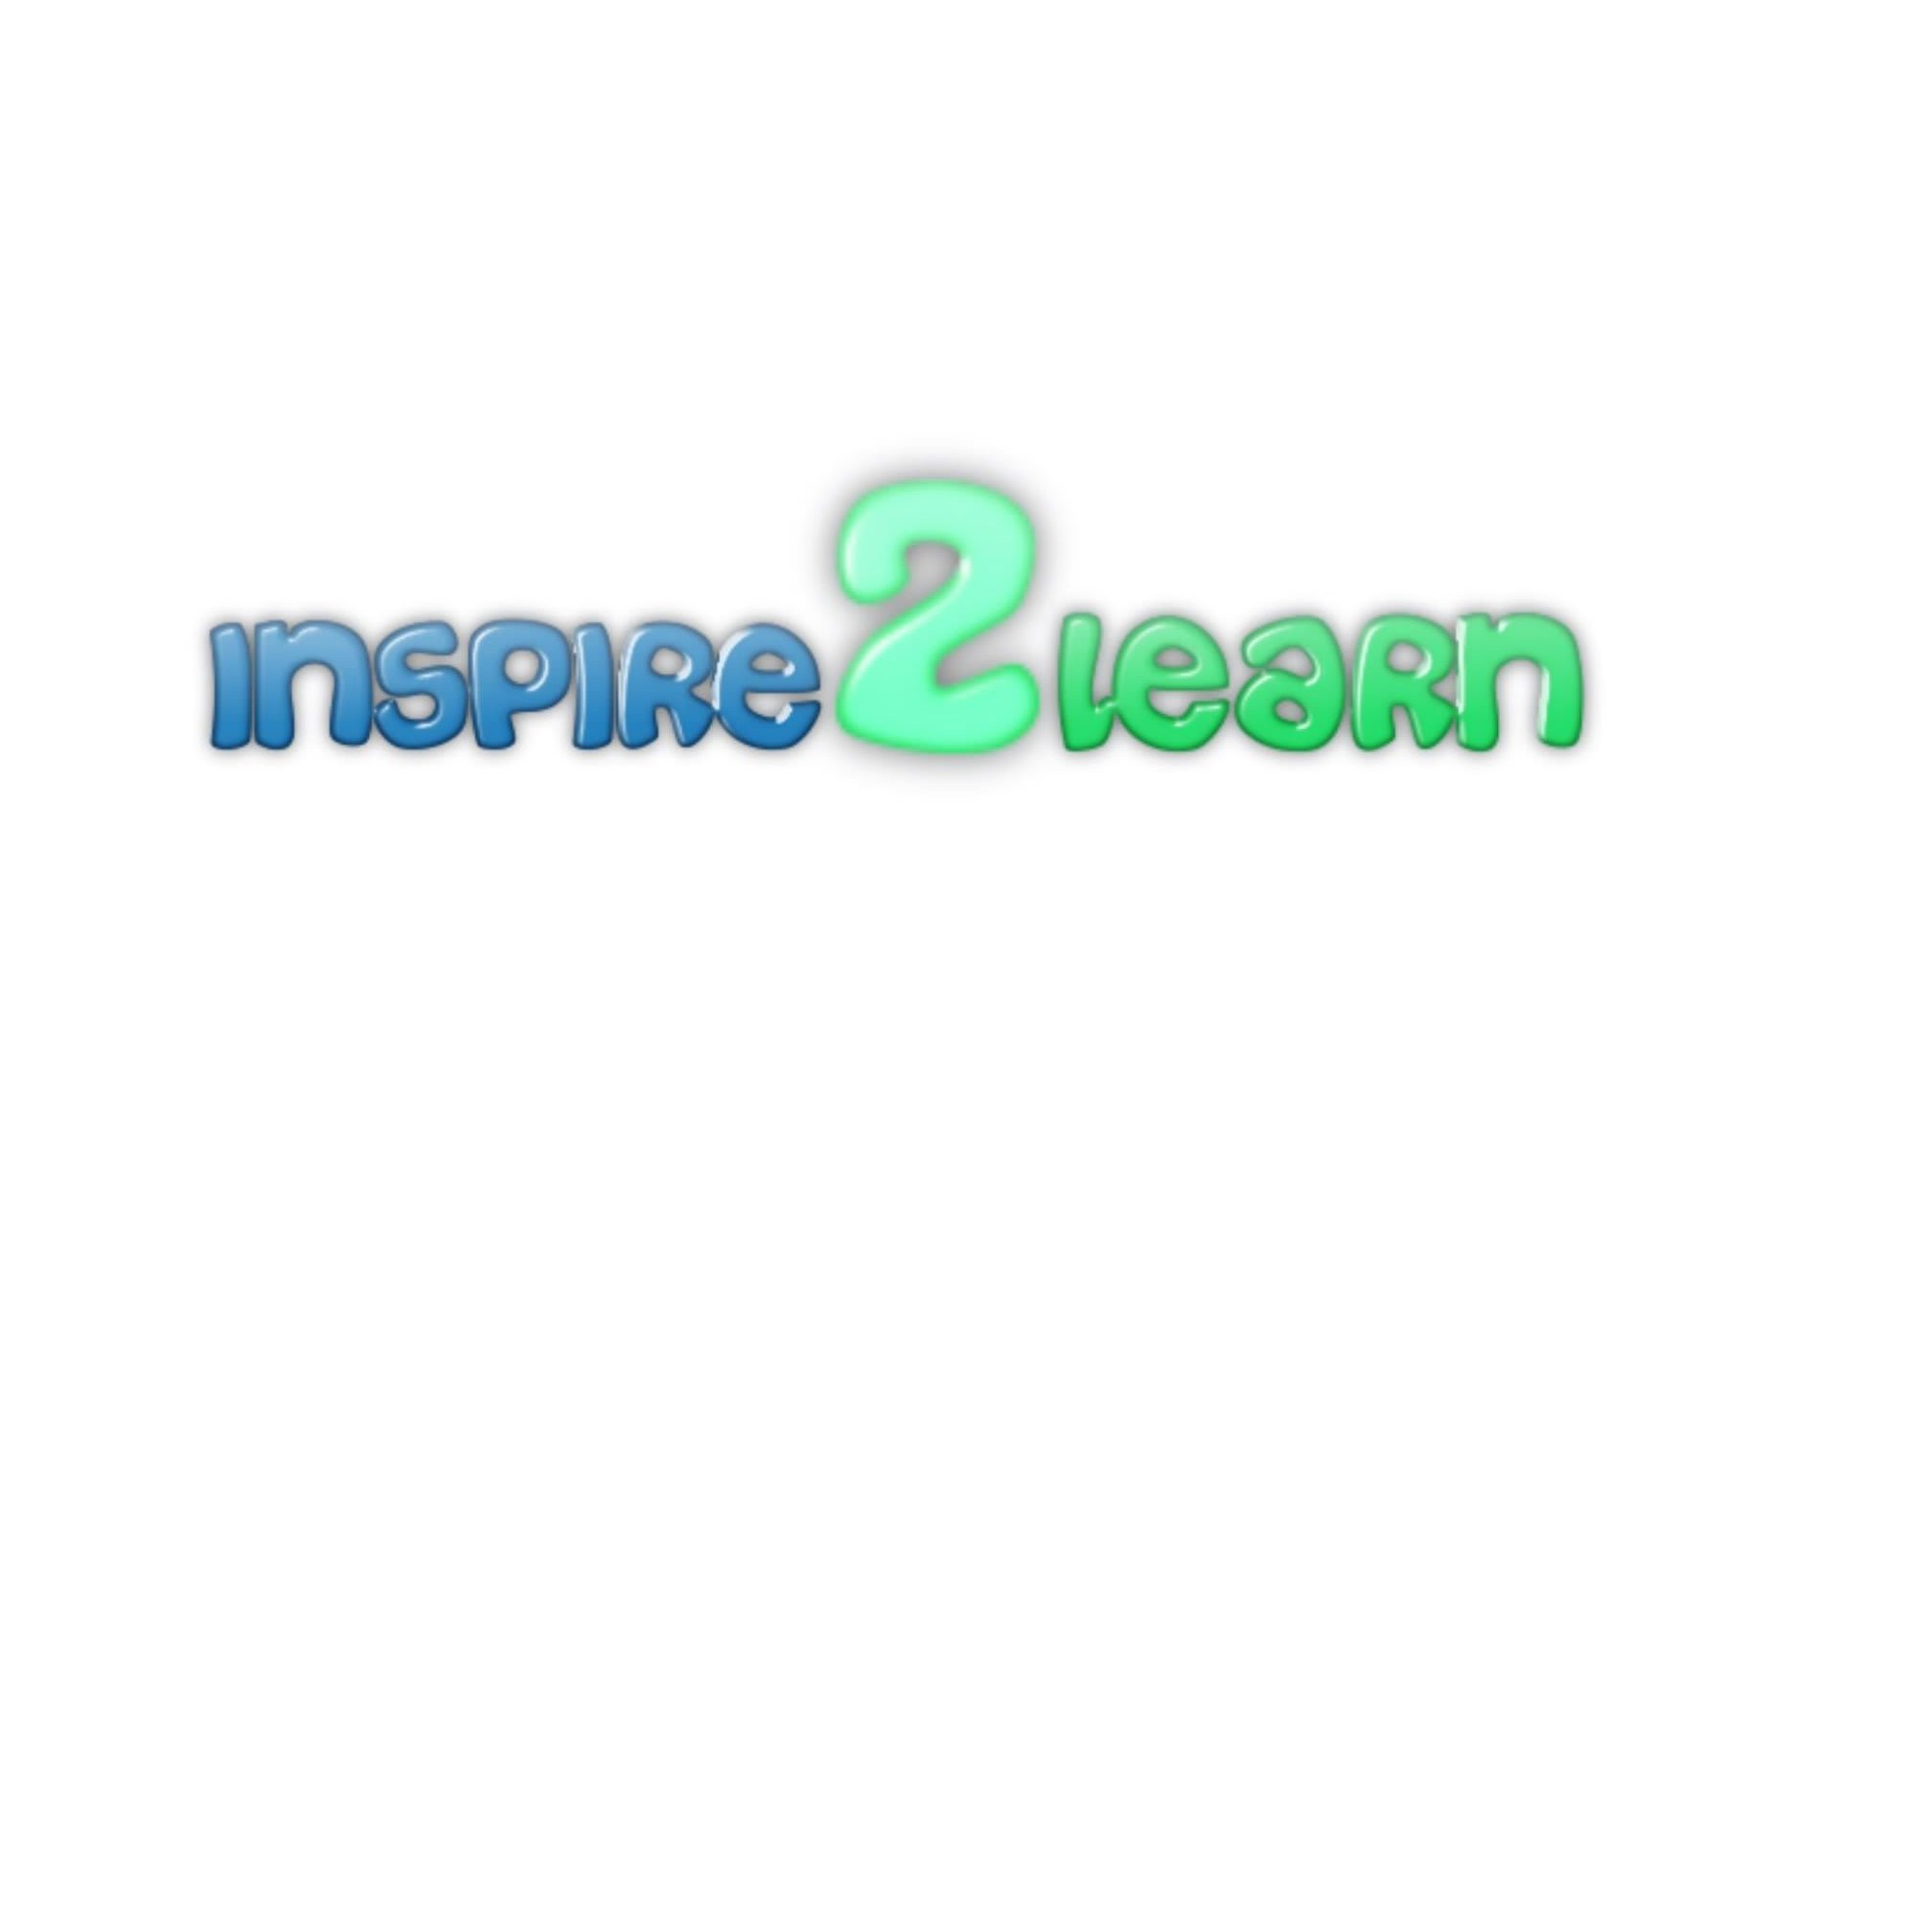 Inspire 2 Learn - Middlesbrough, North Yorkshire TS6 9AE - 01642 467138 | ShowMeLocal.com